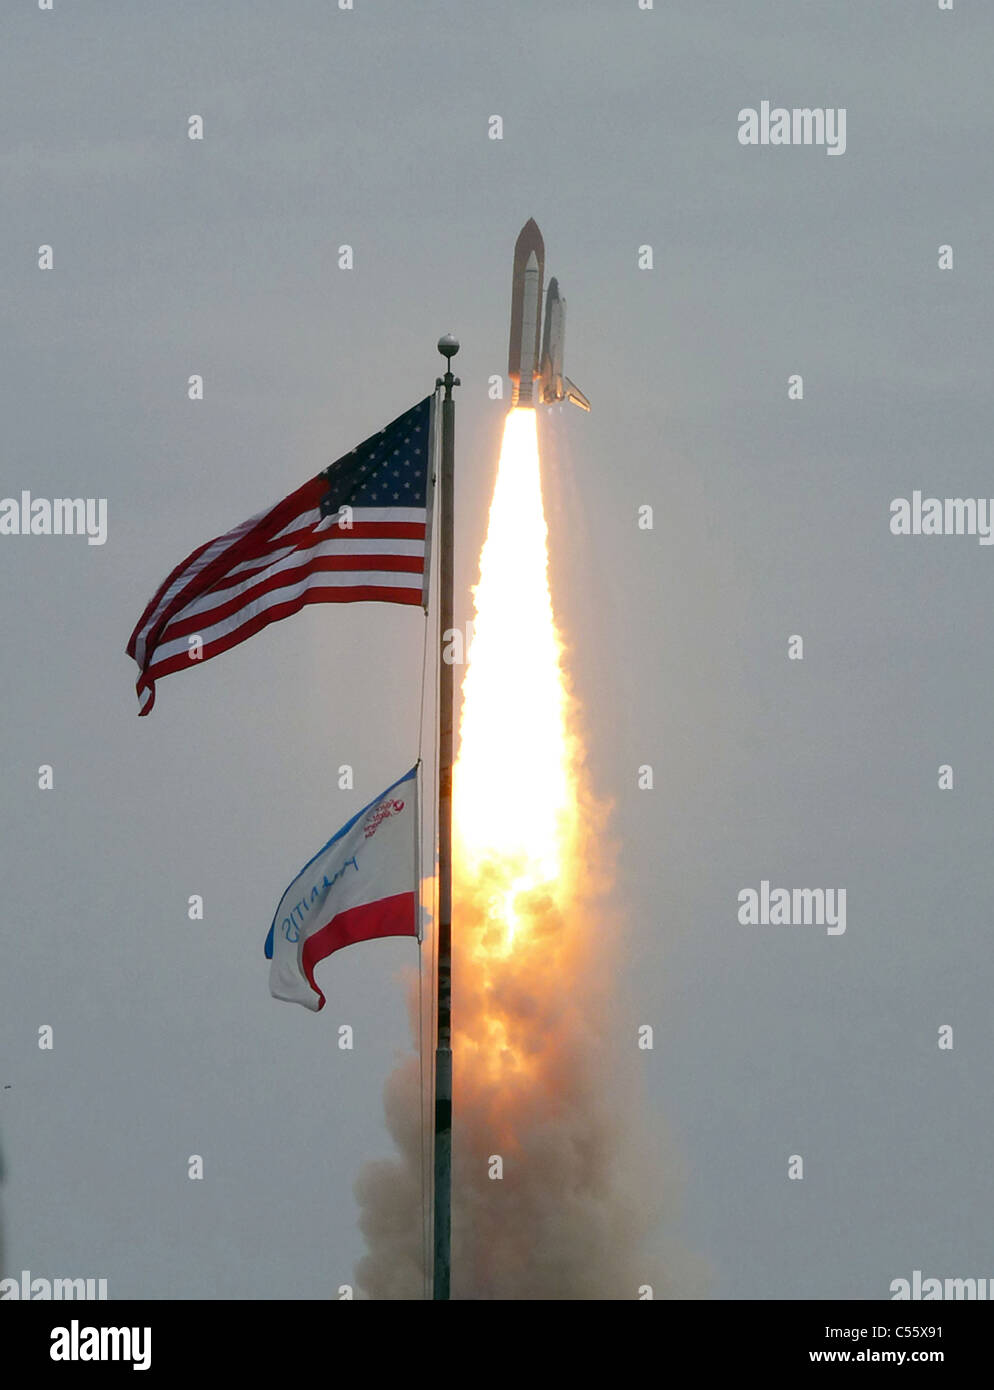 Atlantis STS-135 lifts-off on the final space shuttle mission at NASA's Kennedy Space Center in Florida. - Stock Image